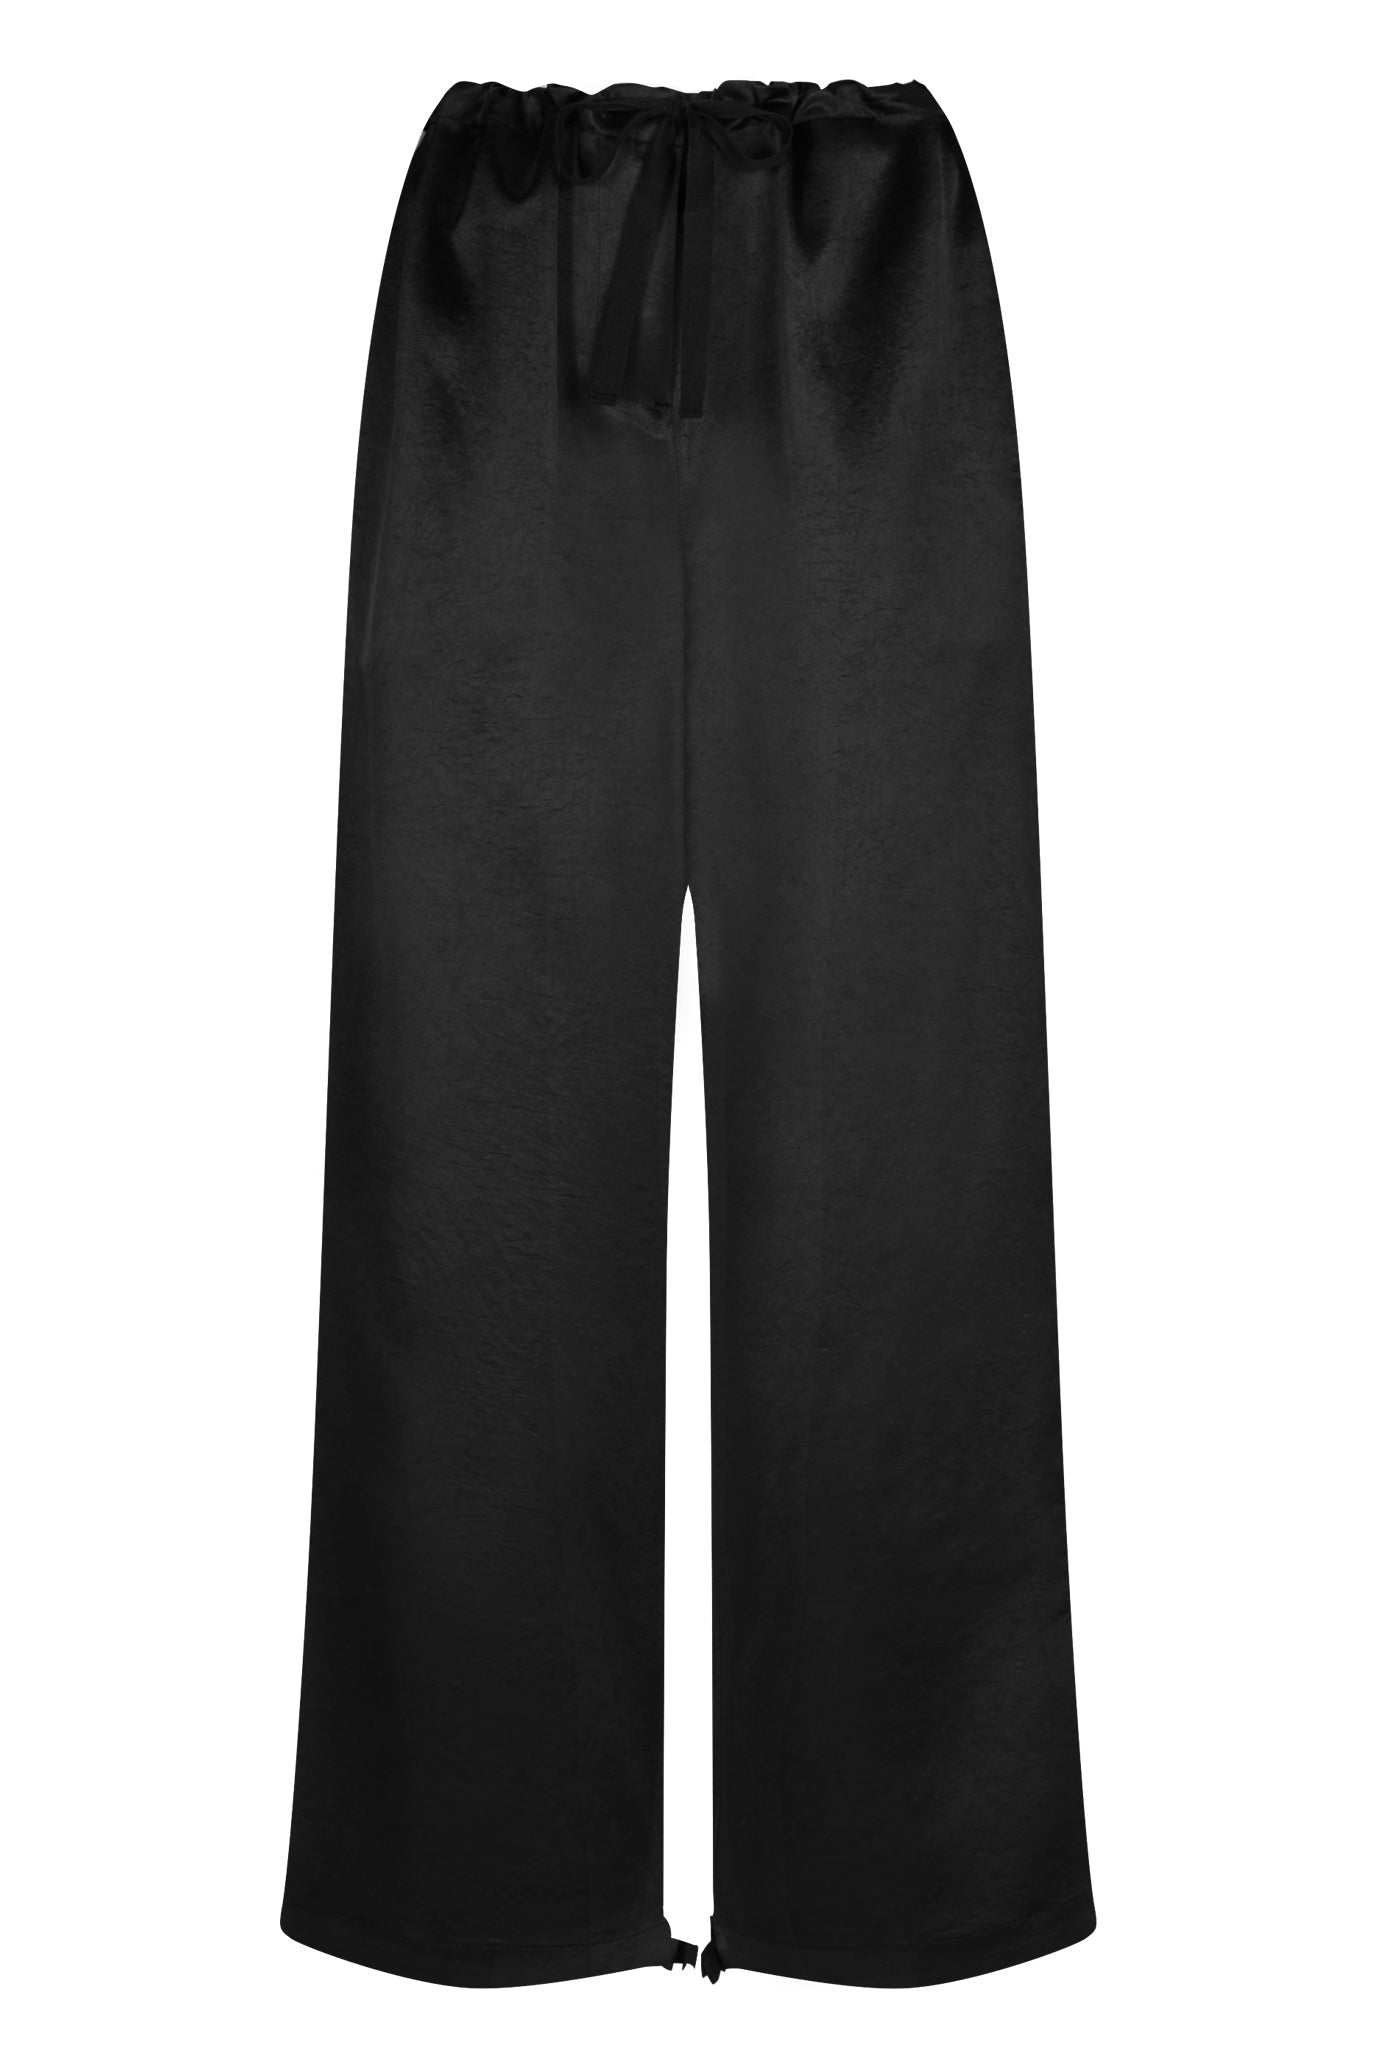 Lola cropped leg trouser black natural fabric Serena Bute